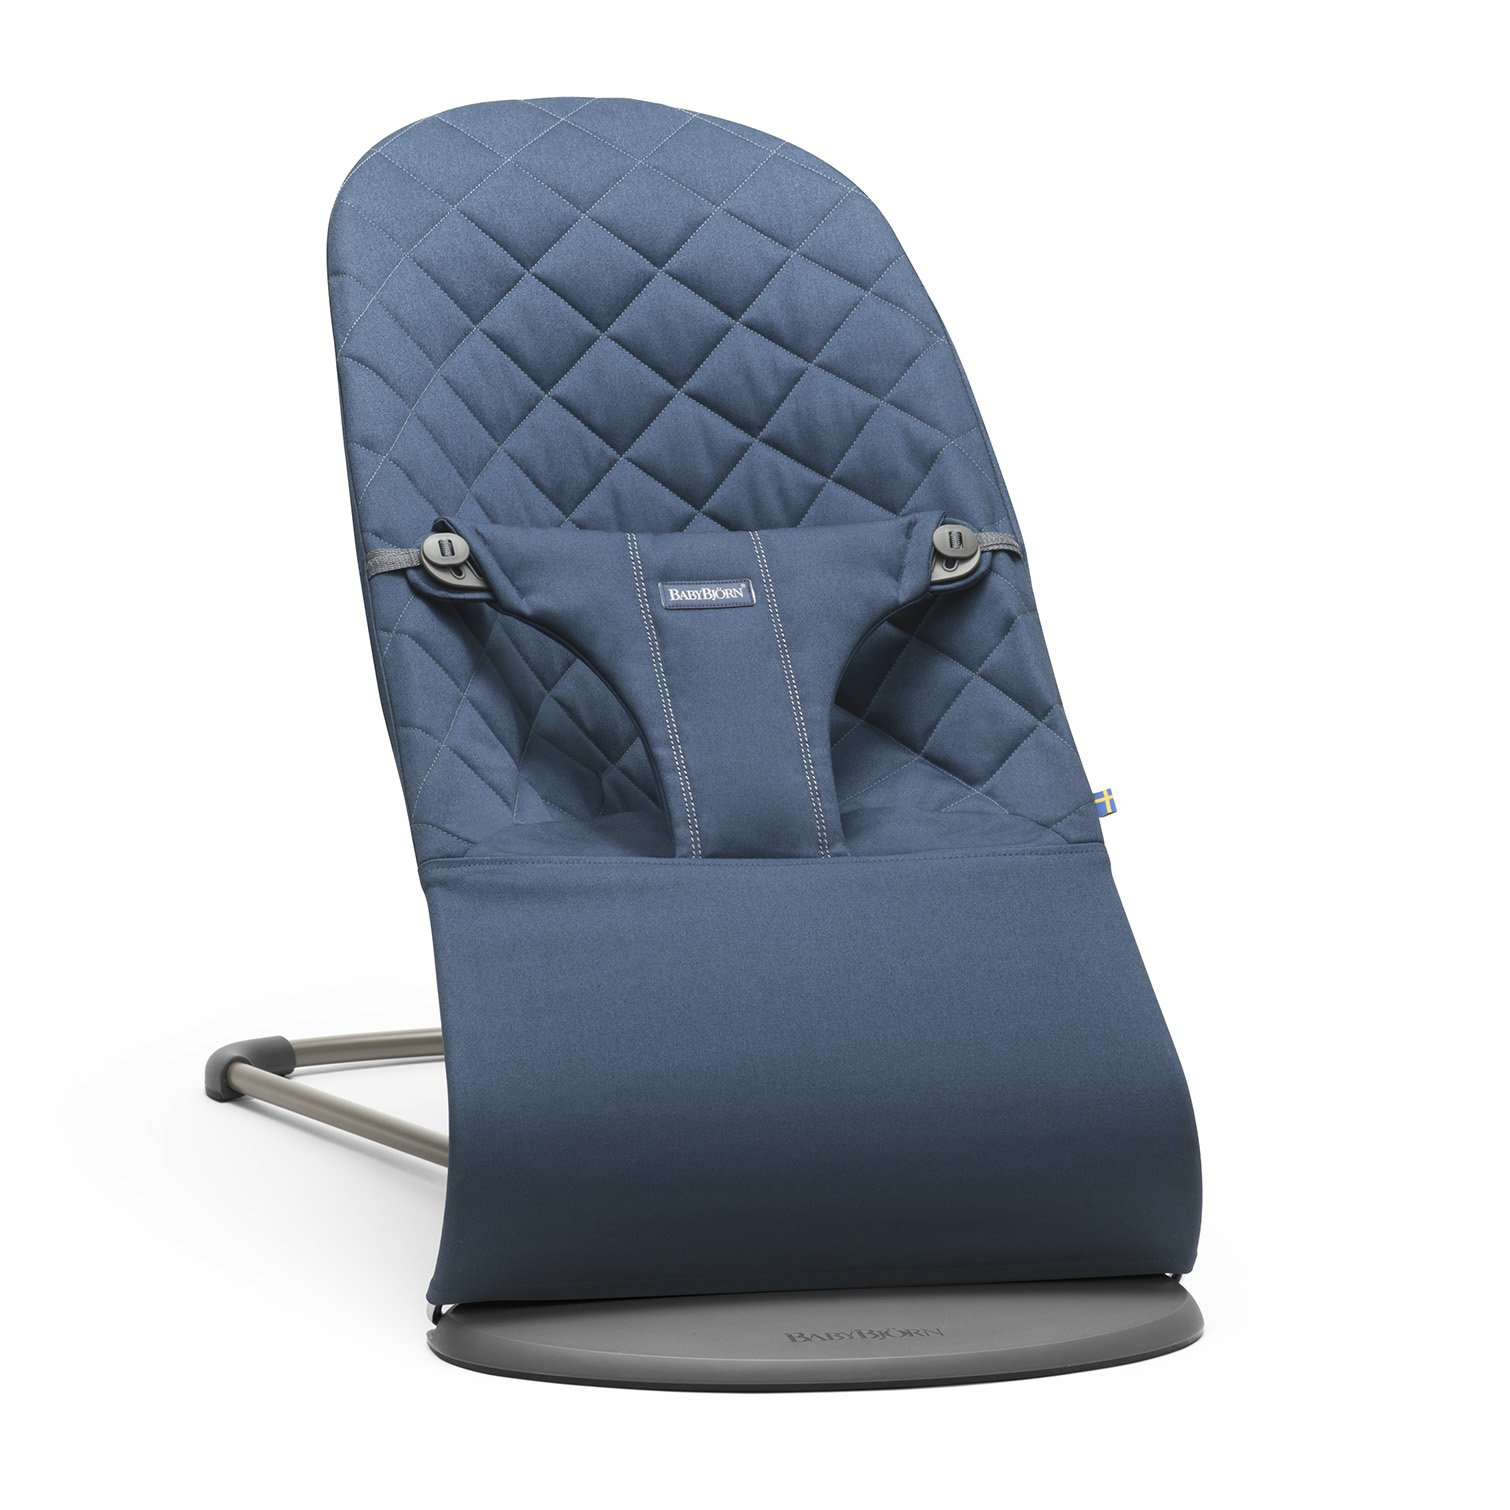 Кресло-шезлонг BabyBjorn Balance  bliss cotton blue